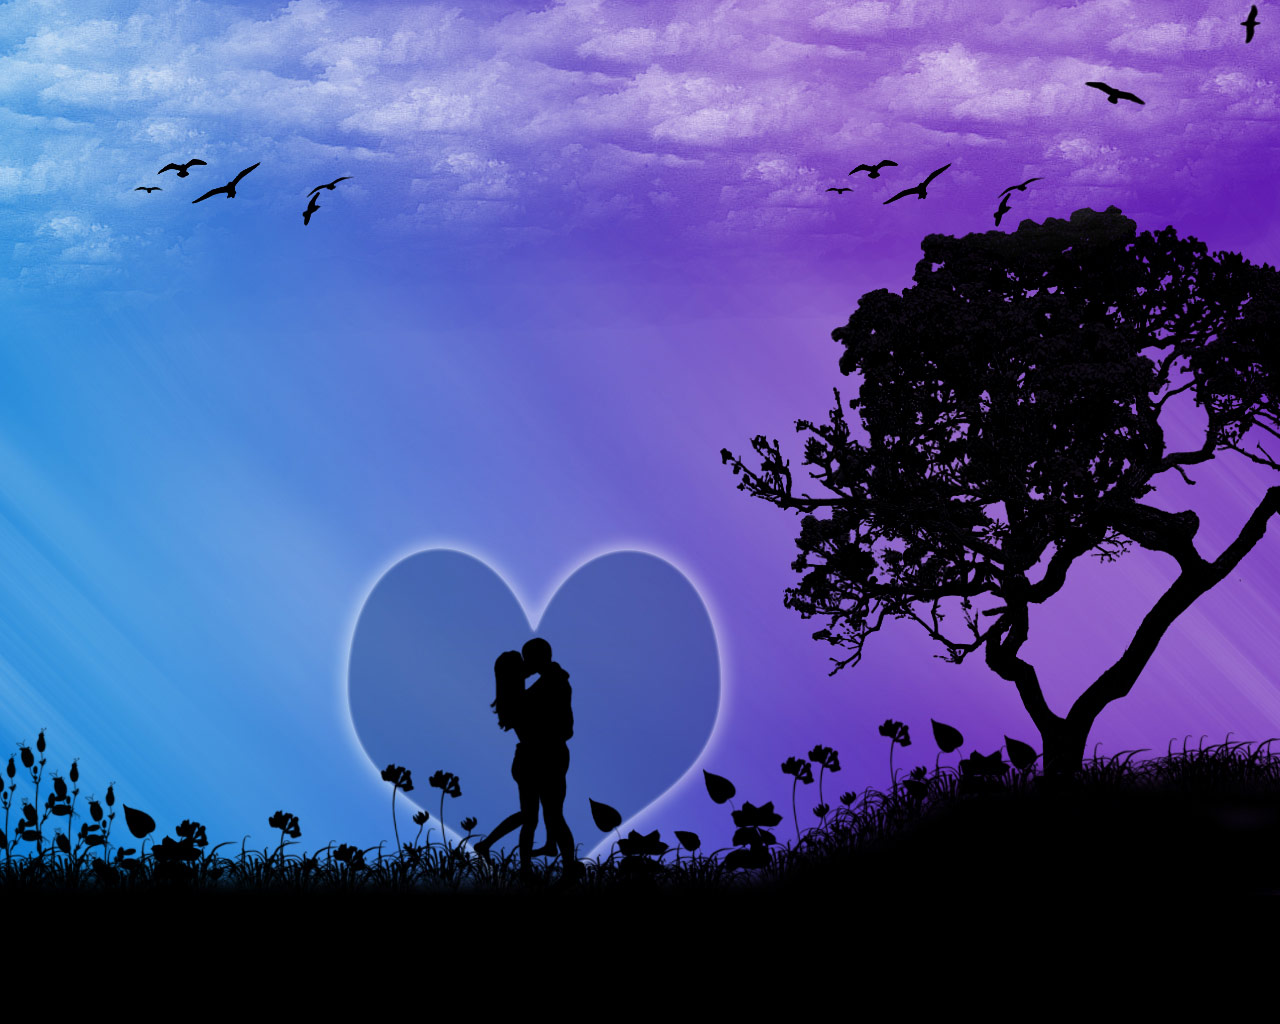 Love Wallpapers Blogspot : Free Wallpaper Dekstop: Real love wallpaper, love ...